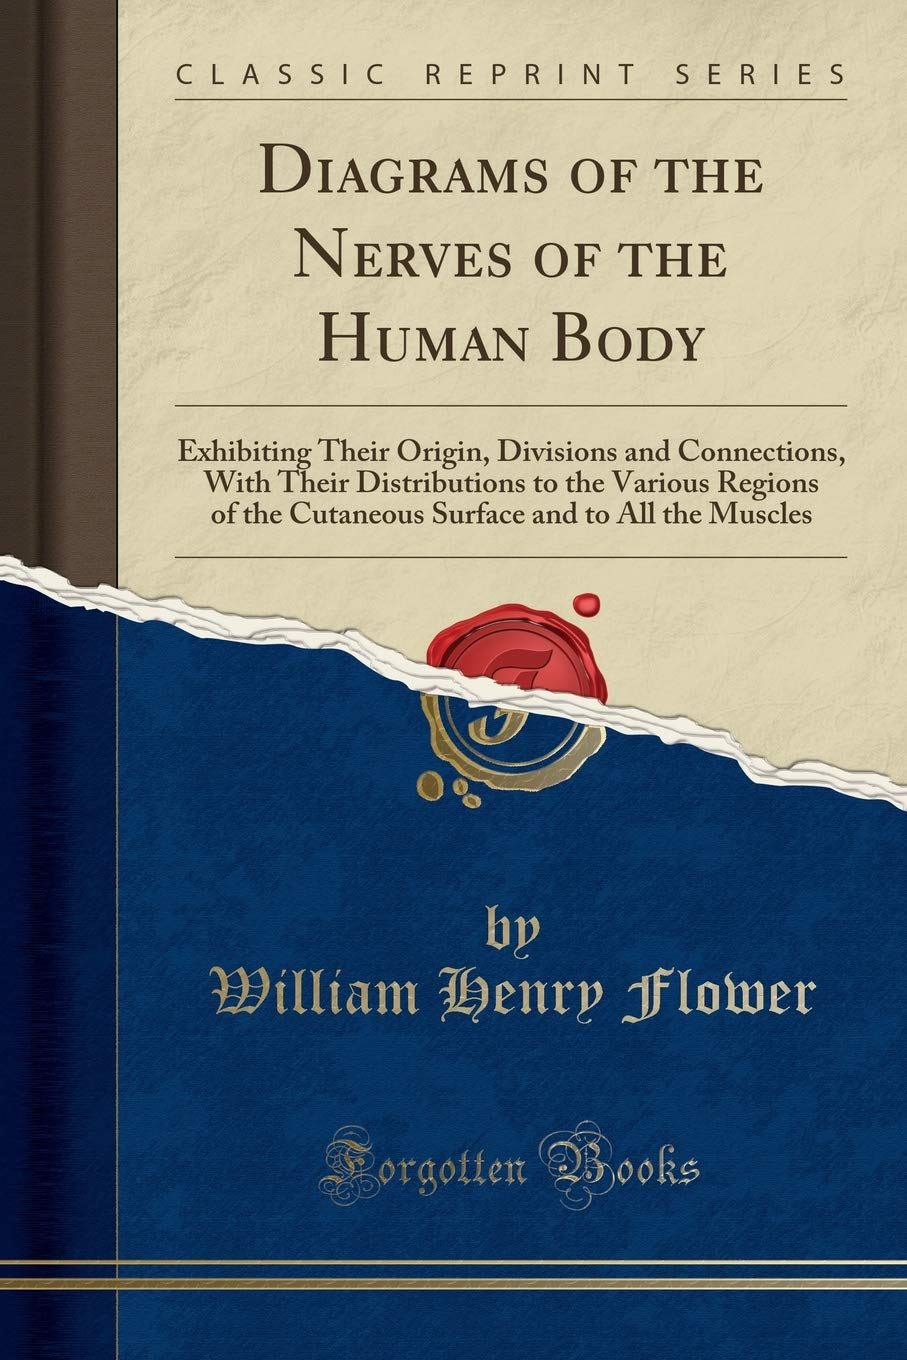 Diagrams of the Nerves of the Human Body: Exhibiting Their Origin, Divisions and Connections, With Their Distributions to the Various Regions of the ... and to All the Muscles (Classic Reprint) pdf